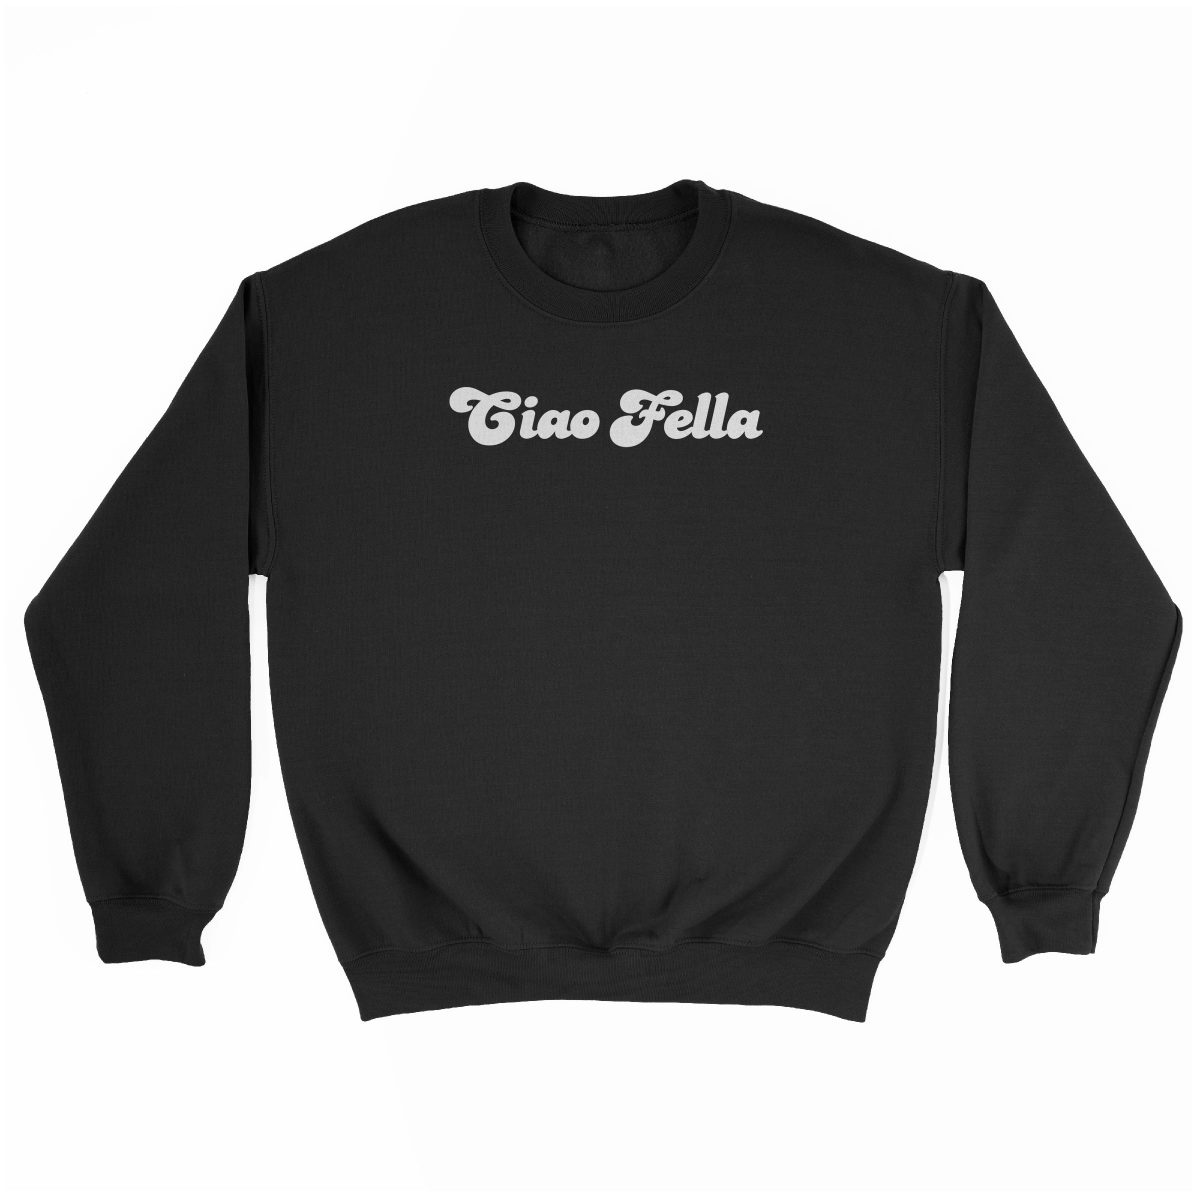 """CIAO FELLA"" funny sweatshirt in black by kikicutt"